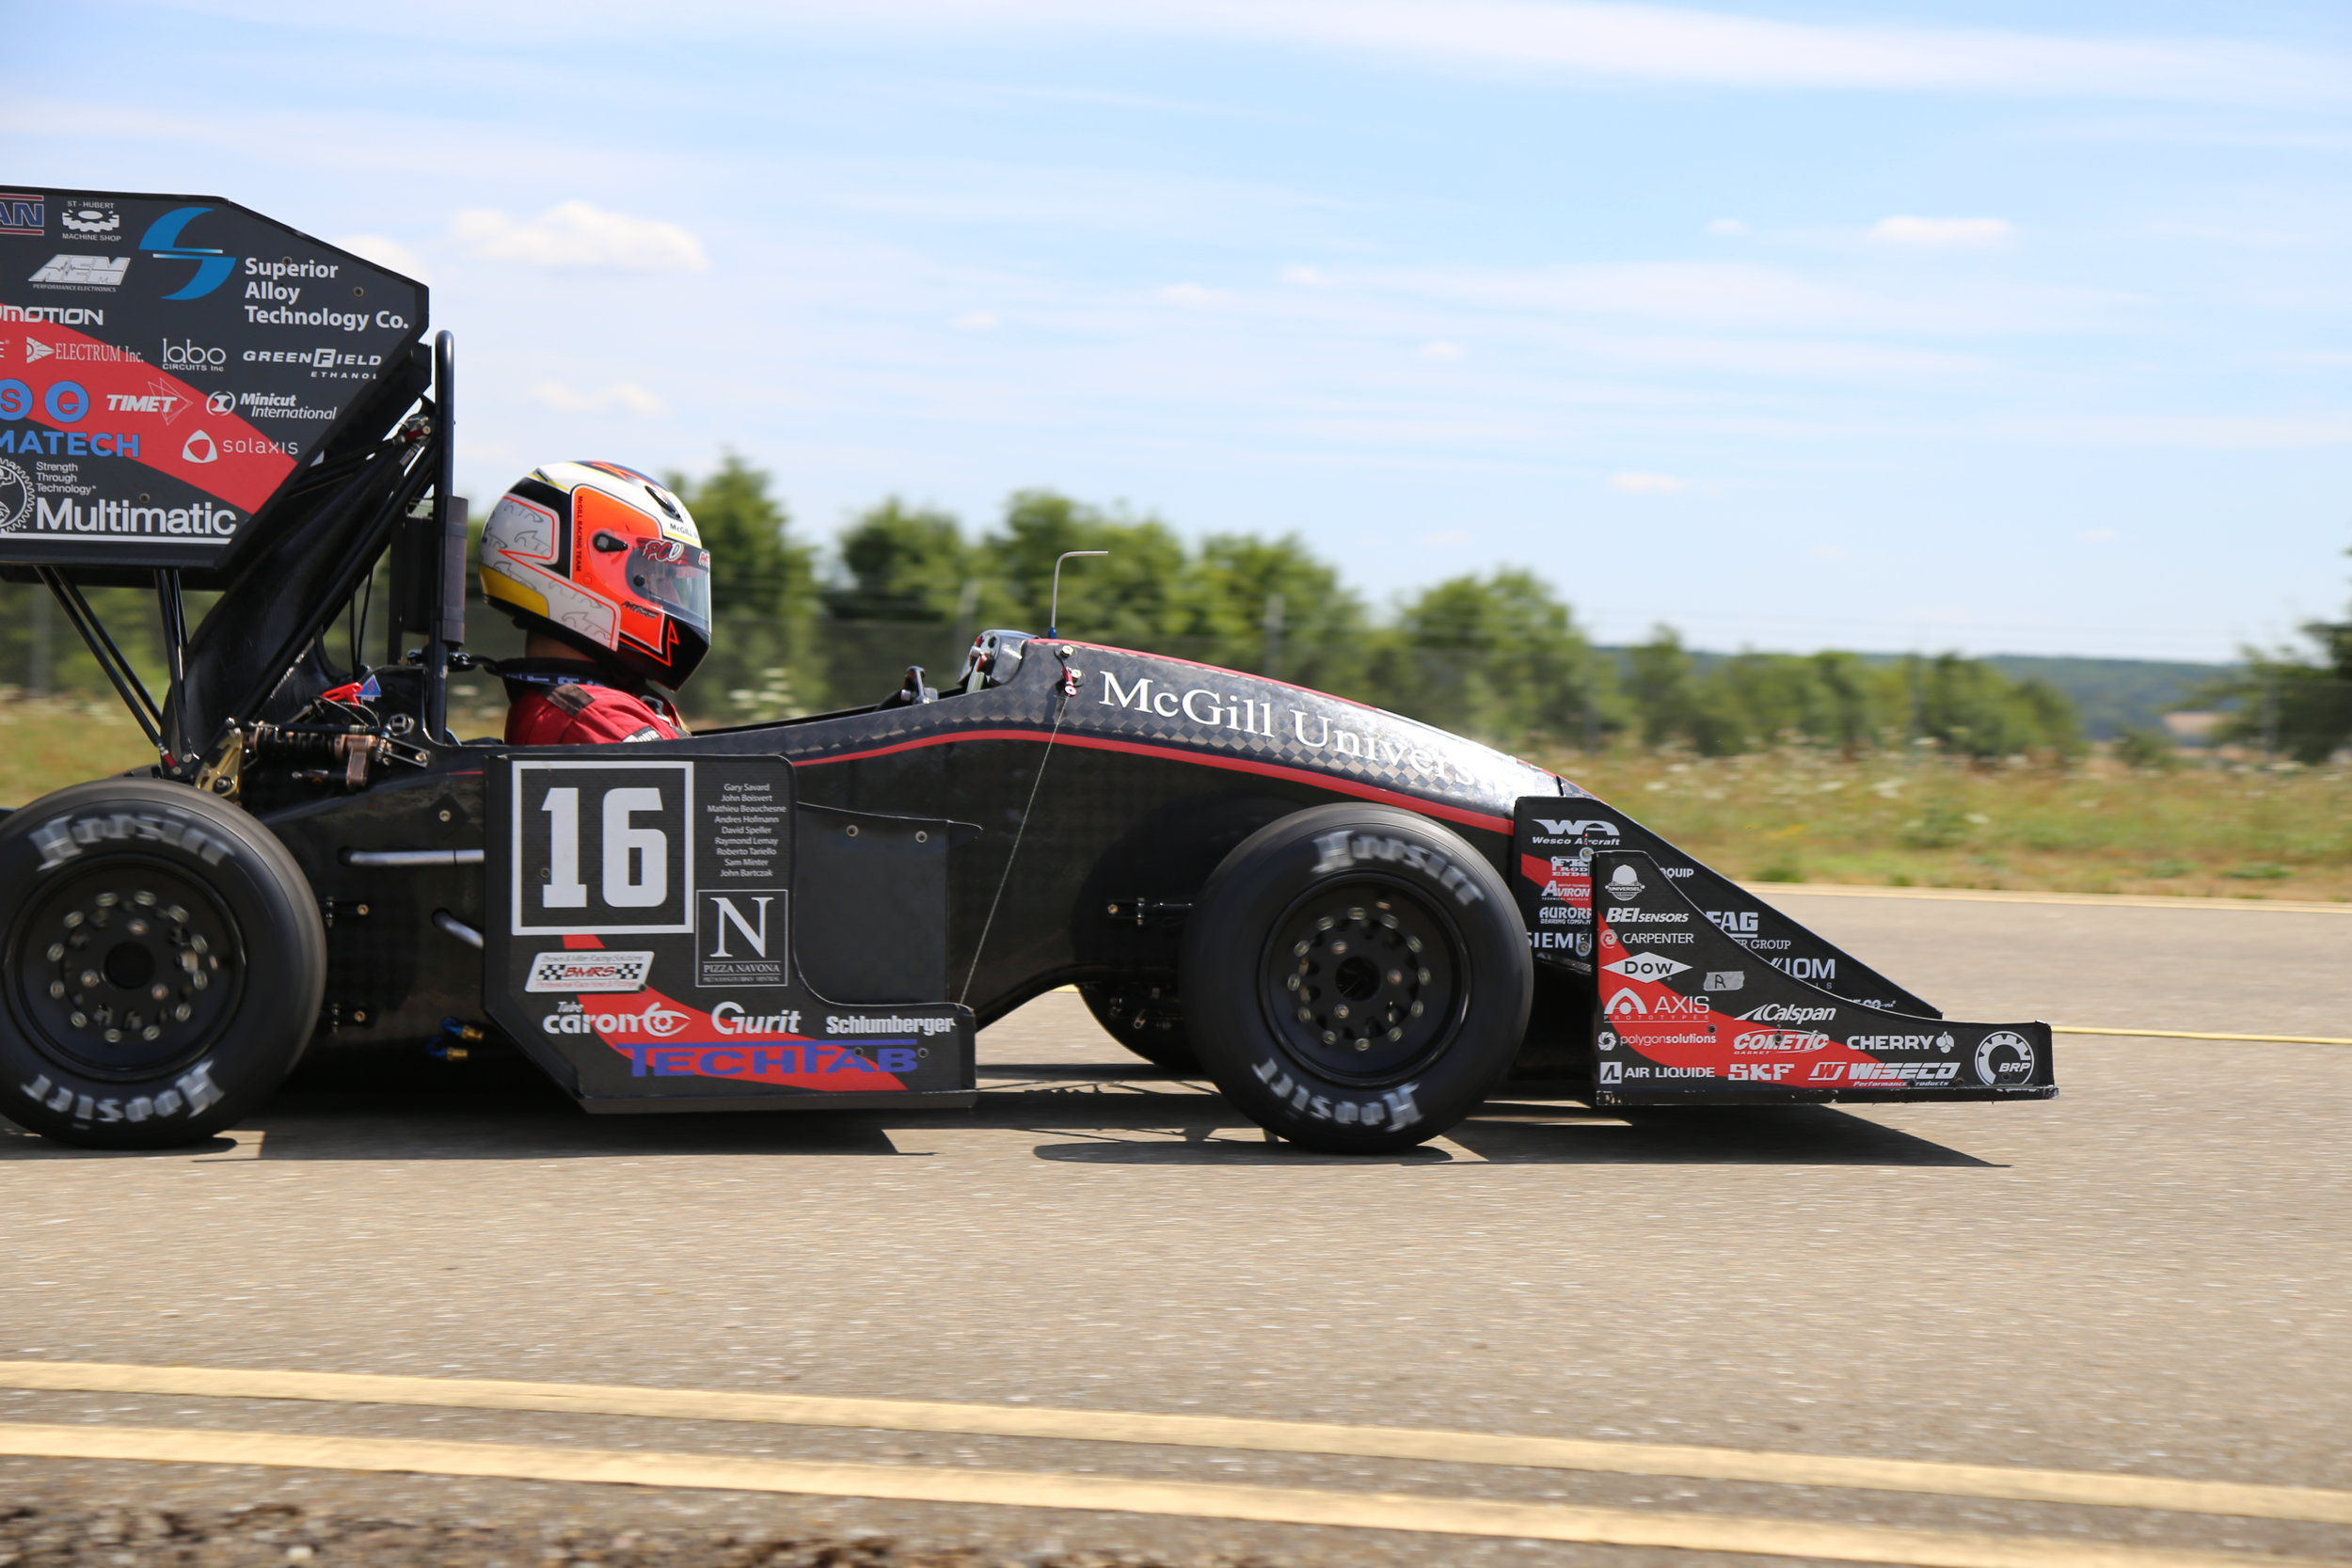 - McGill racing team